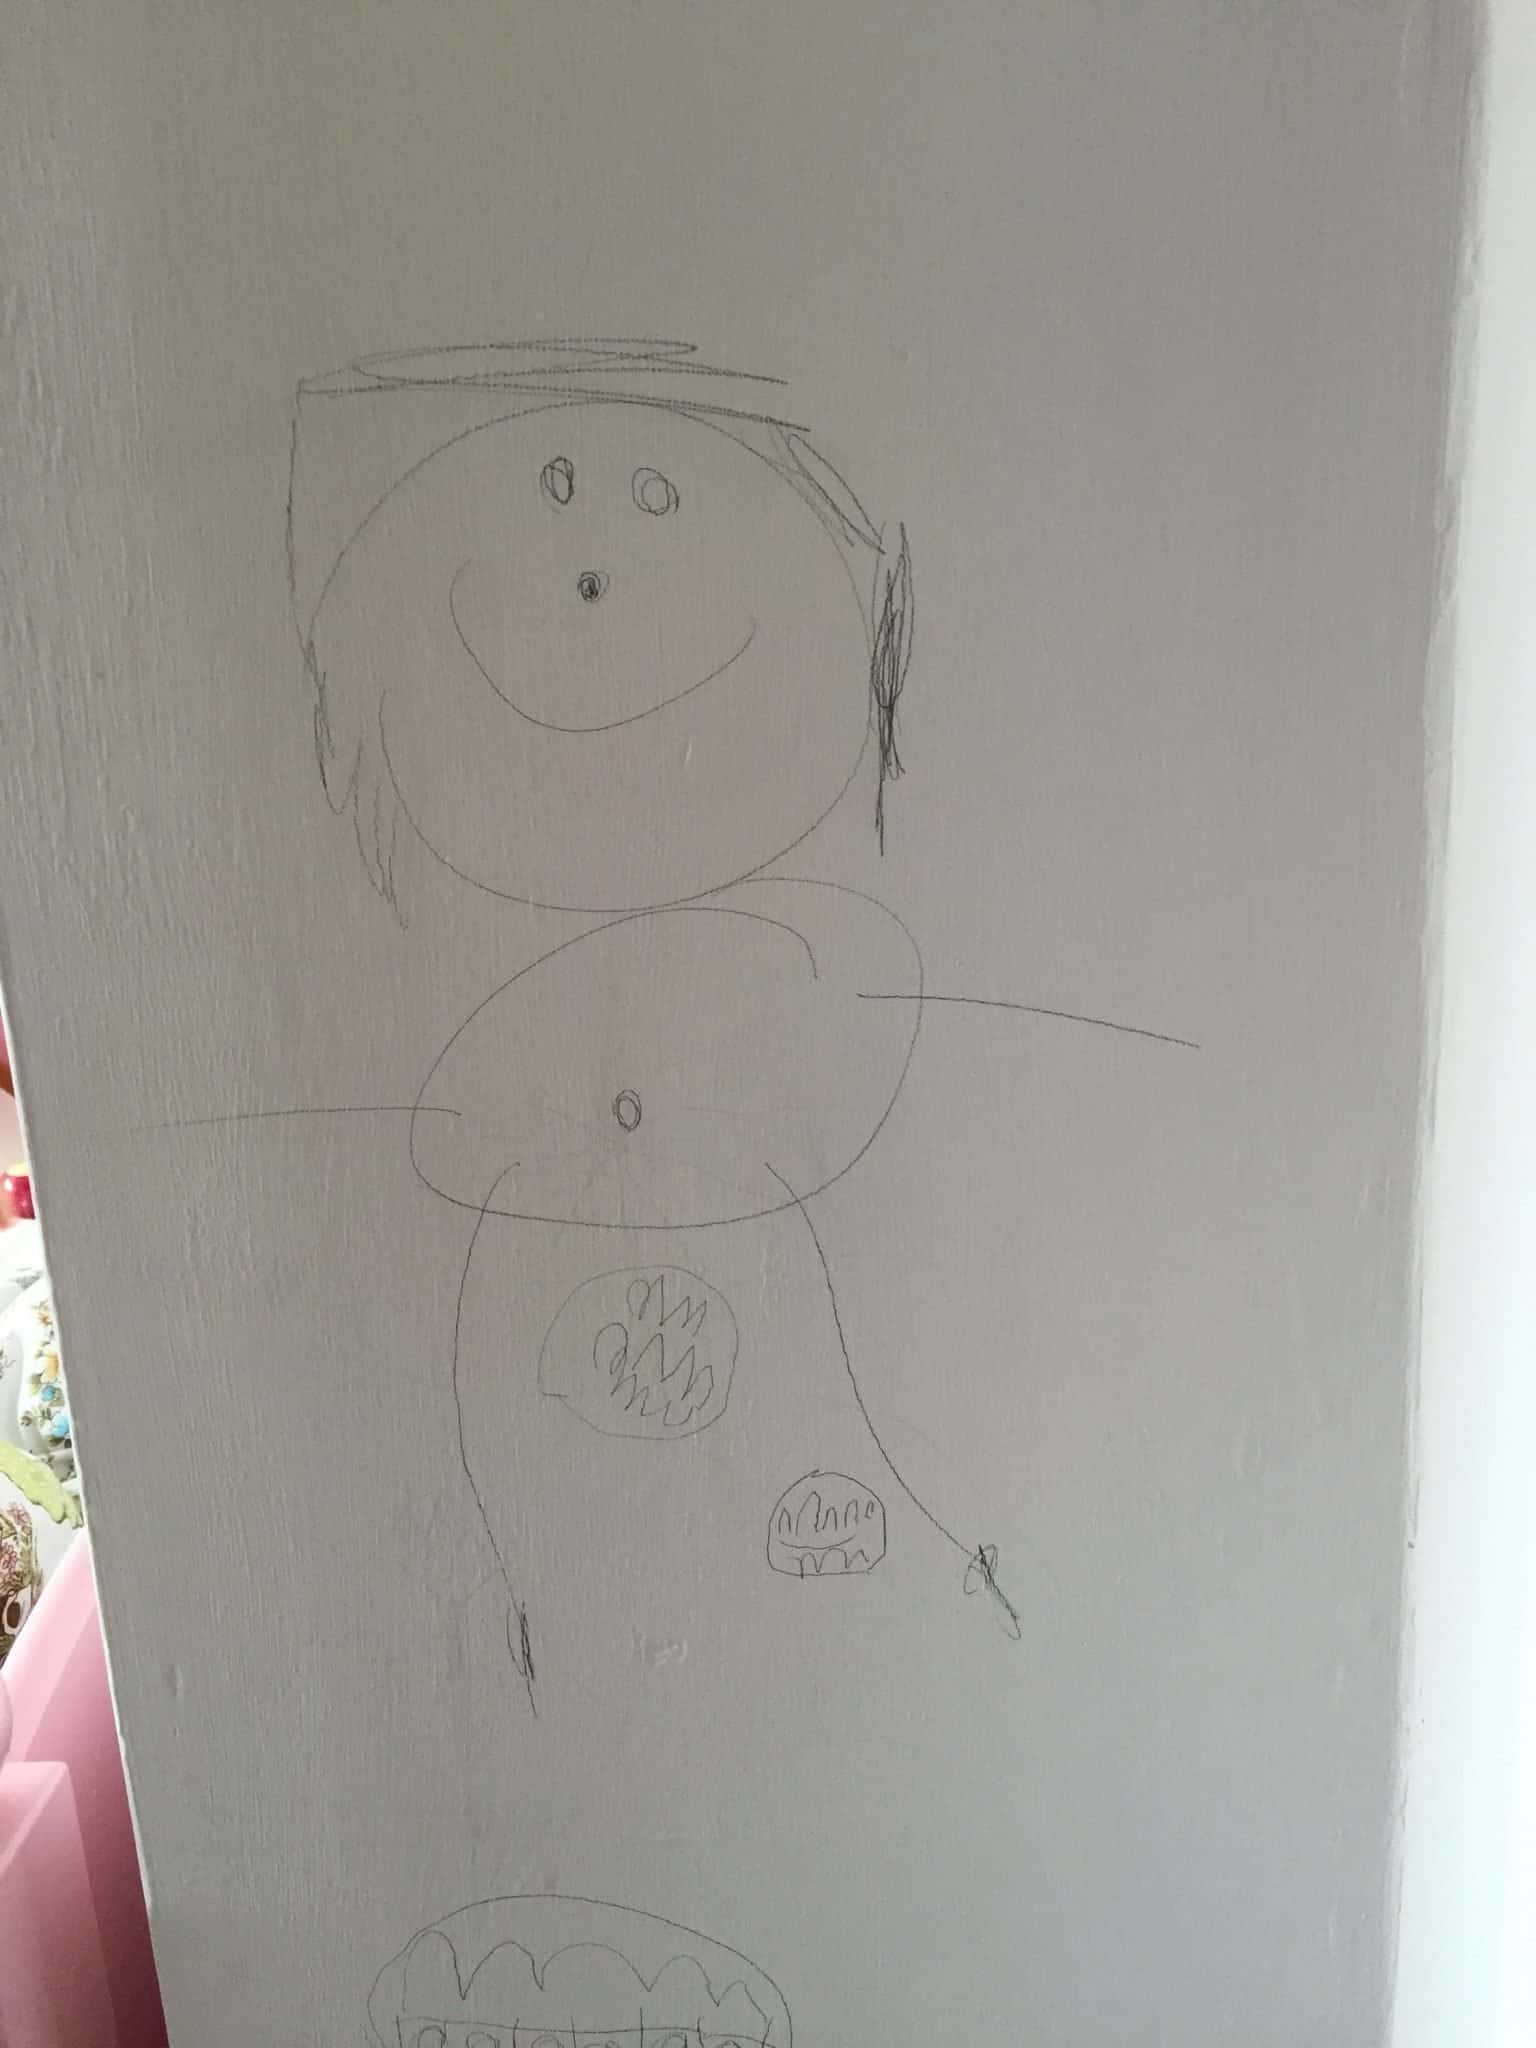 Four year old's pencil drawing on the wall